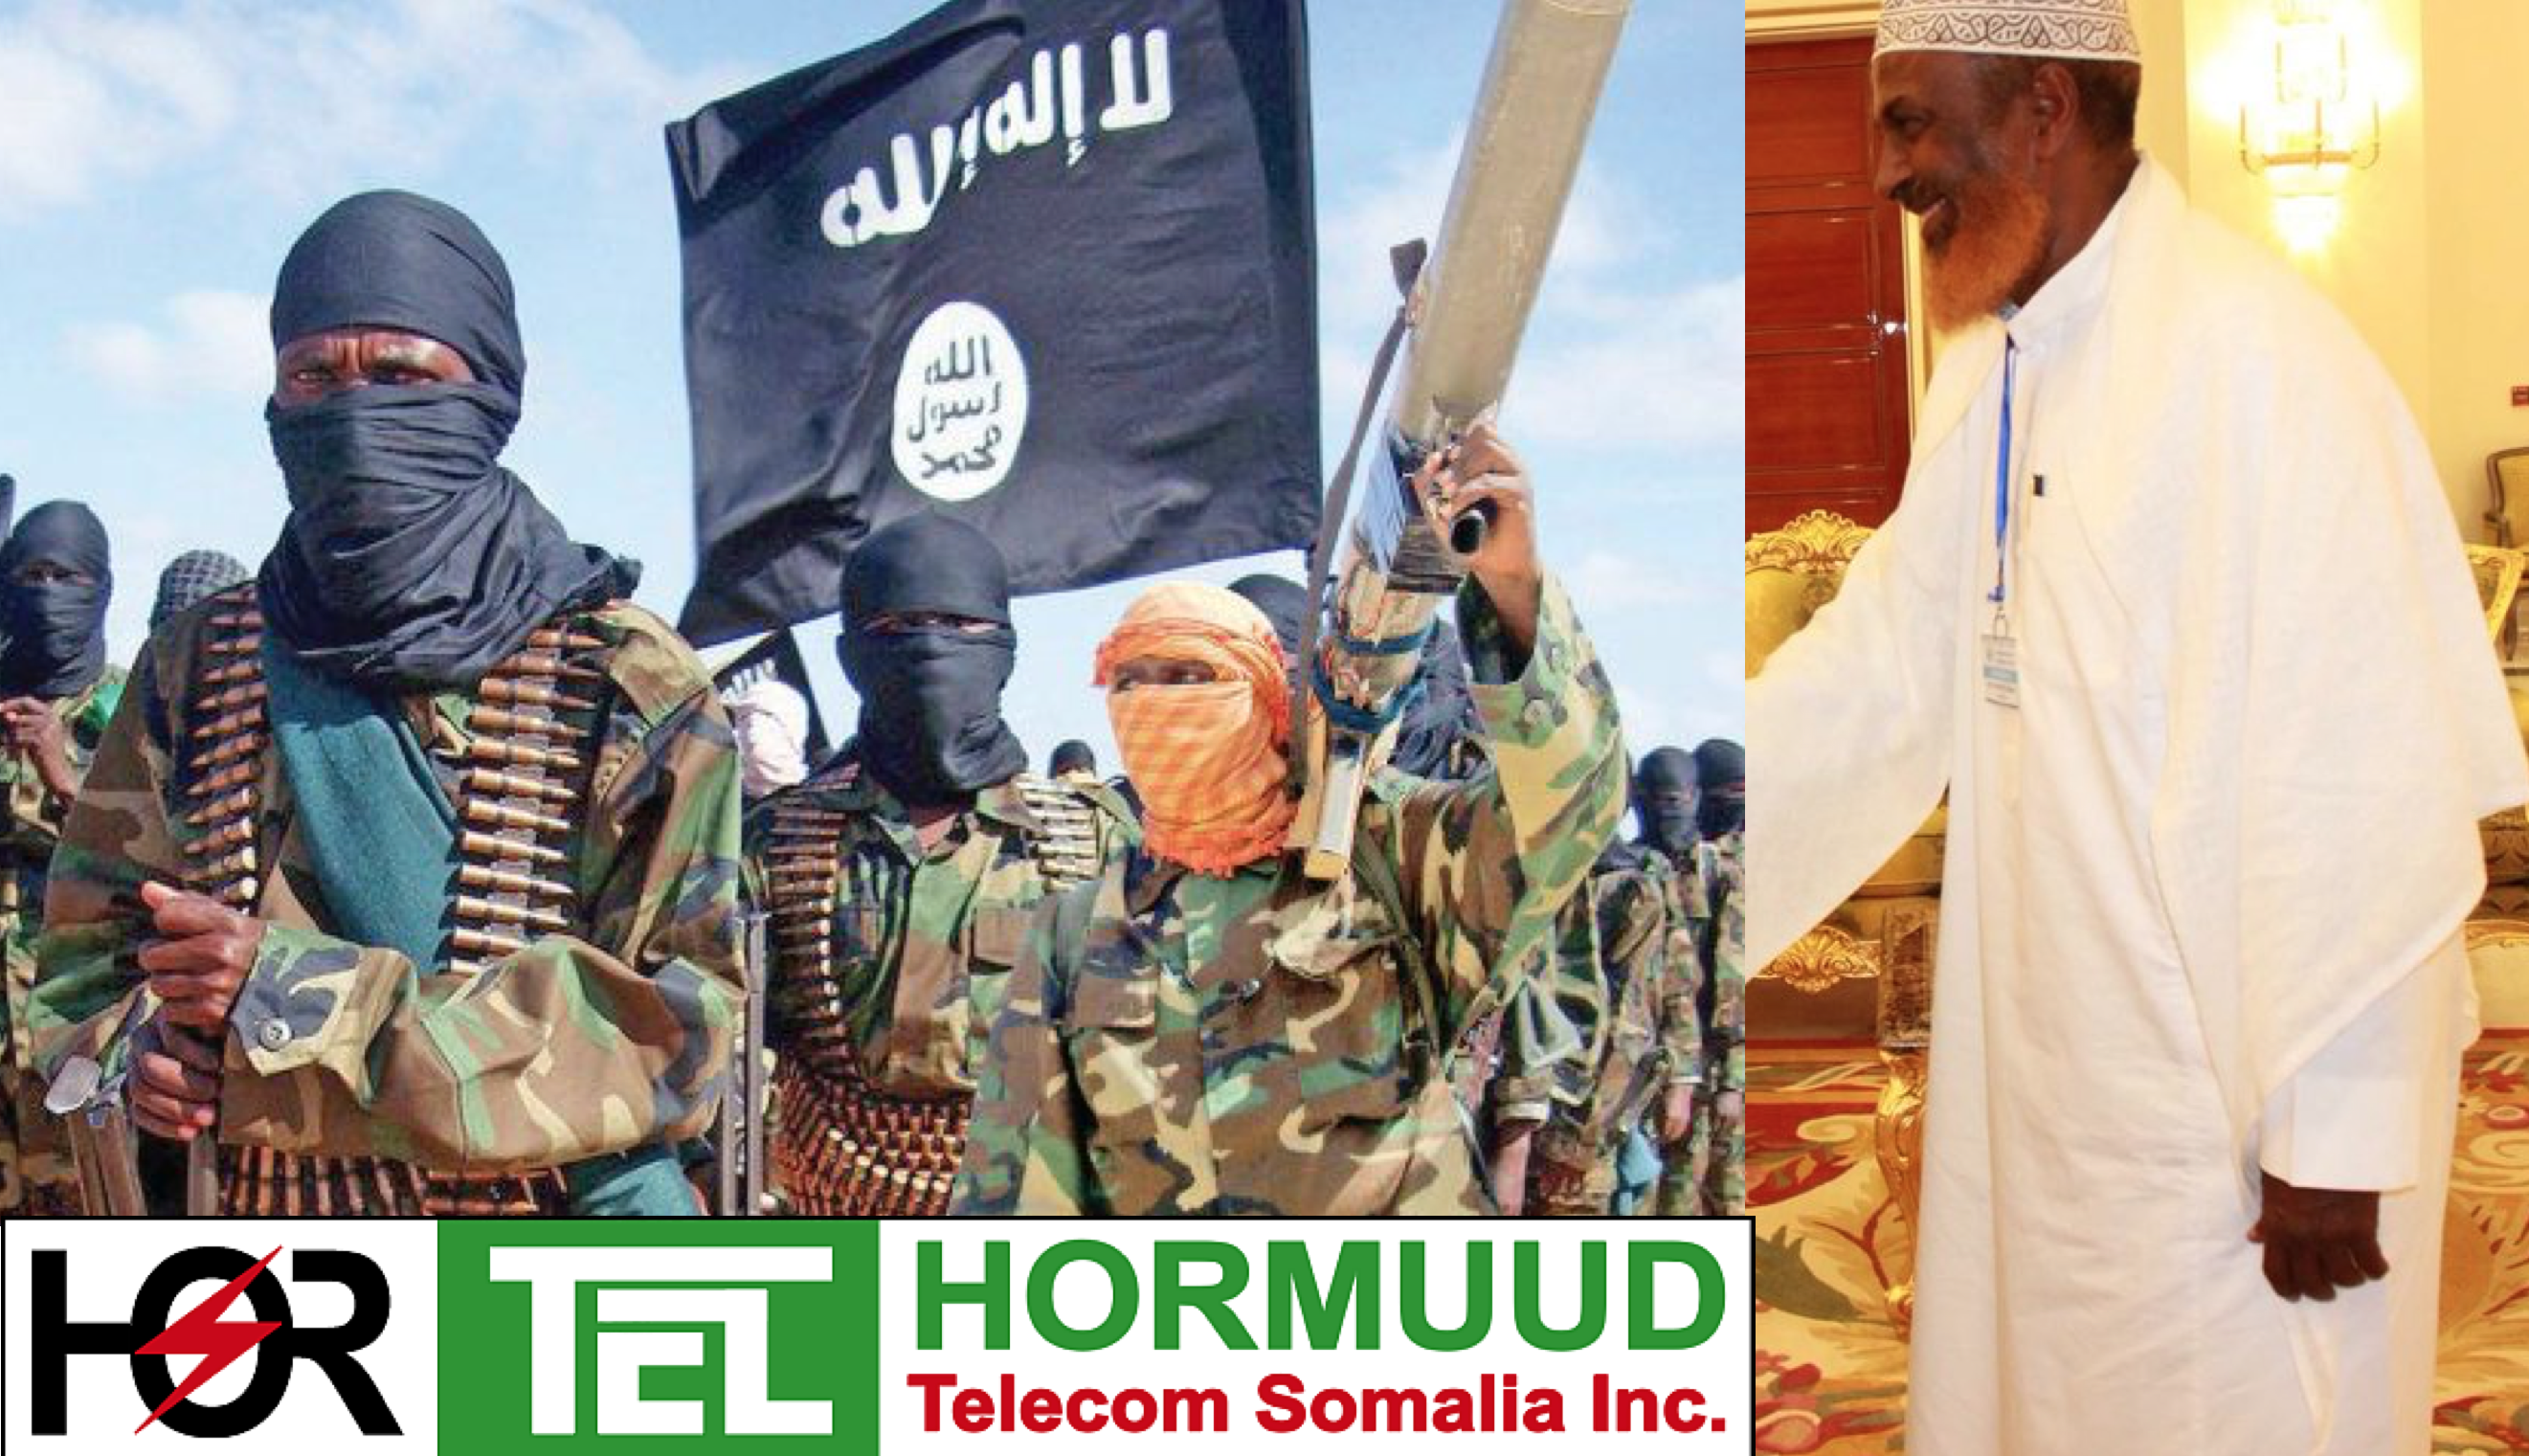 "Somalia:Ahmed Nur Ali Jim'ale, Al-Shabaab's chief financier But the Hormuud Telecom carries the public stigma of being ""one of the single largest financiers of Al-Shabaab"